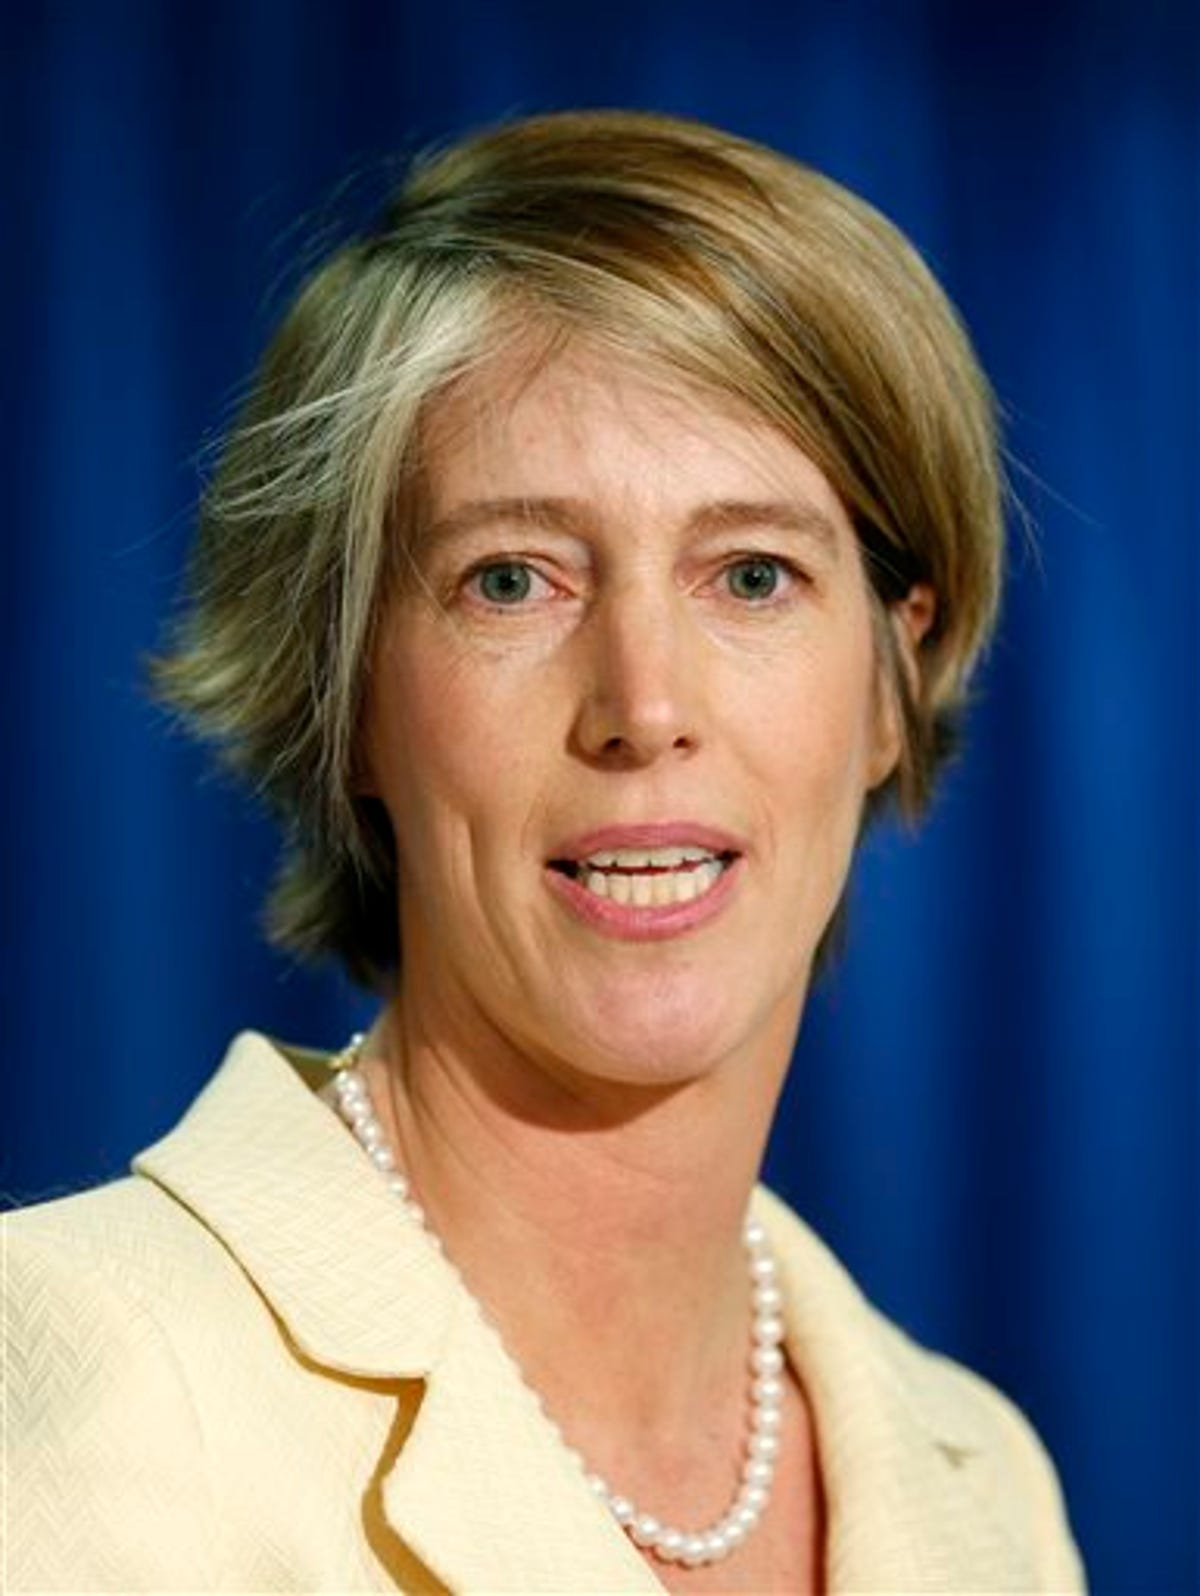 Zephyr Teachout looks for 'opening' against Cuomo